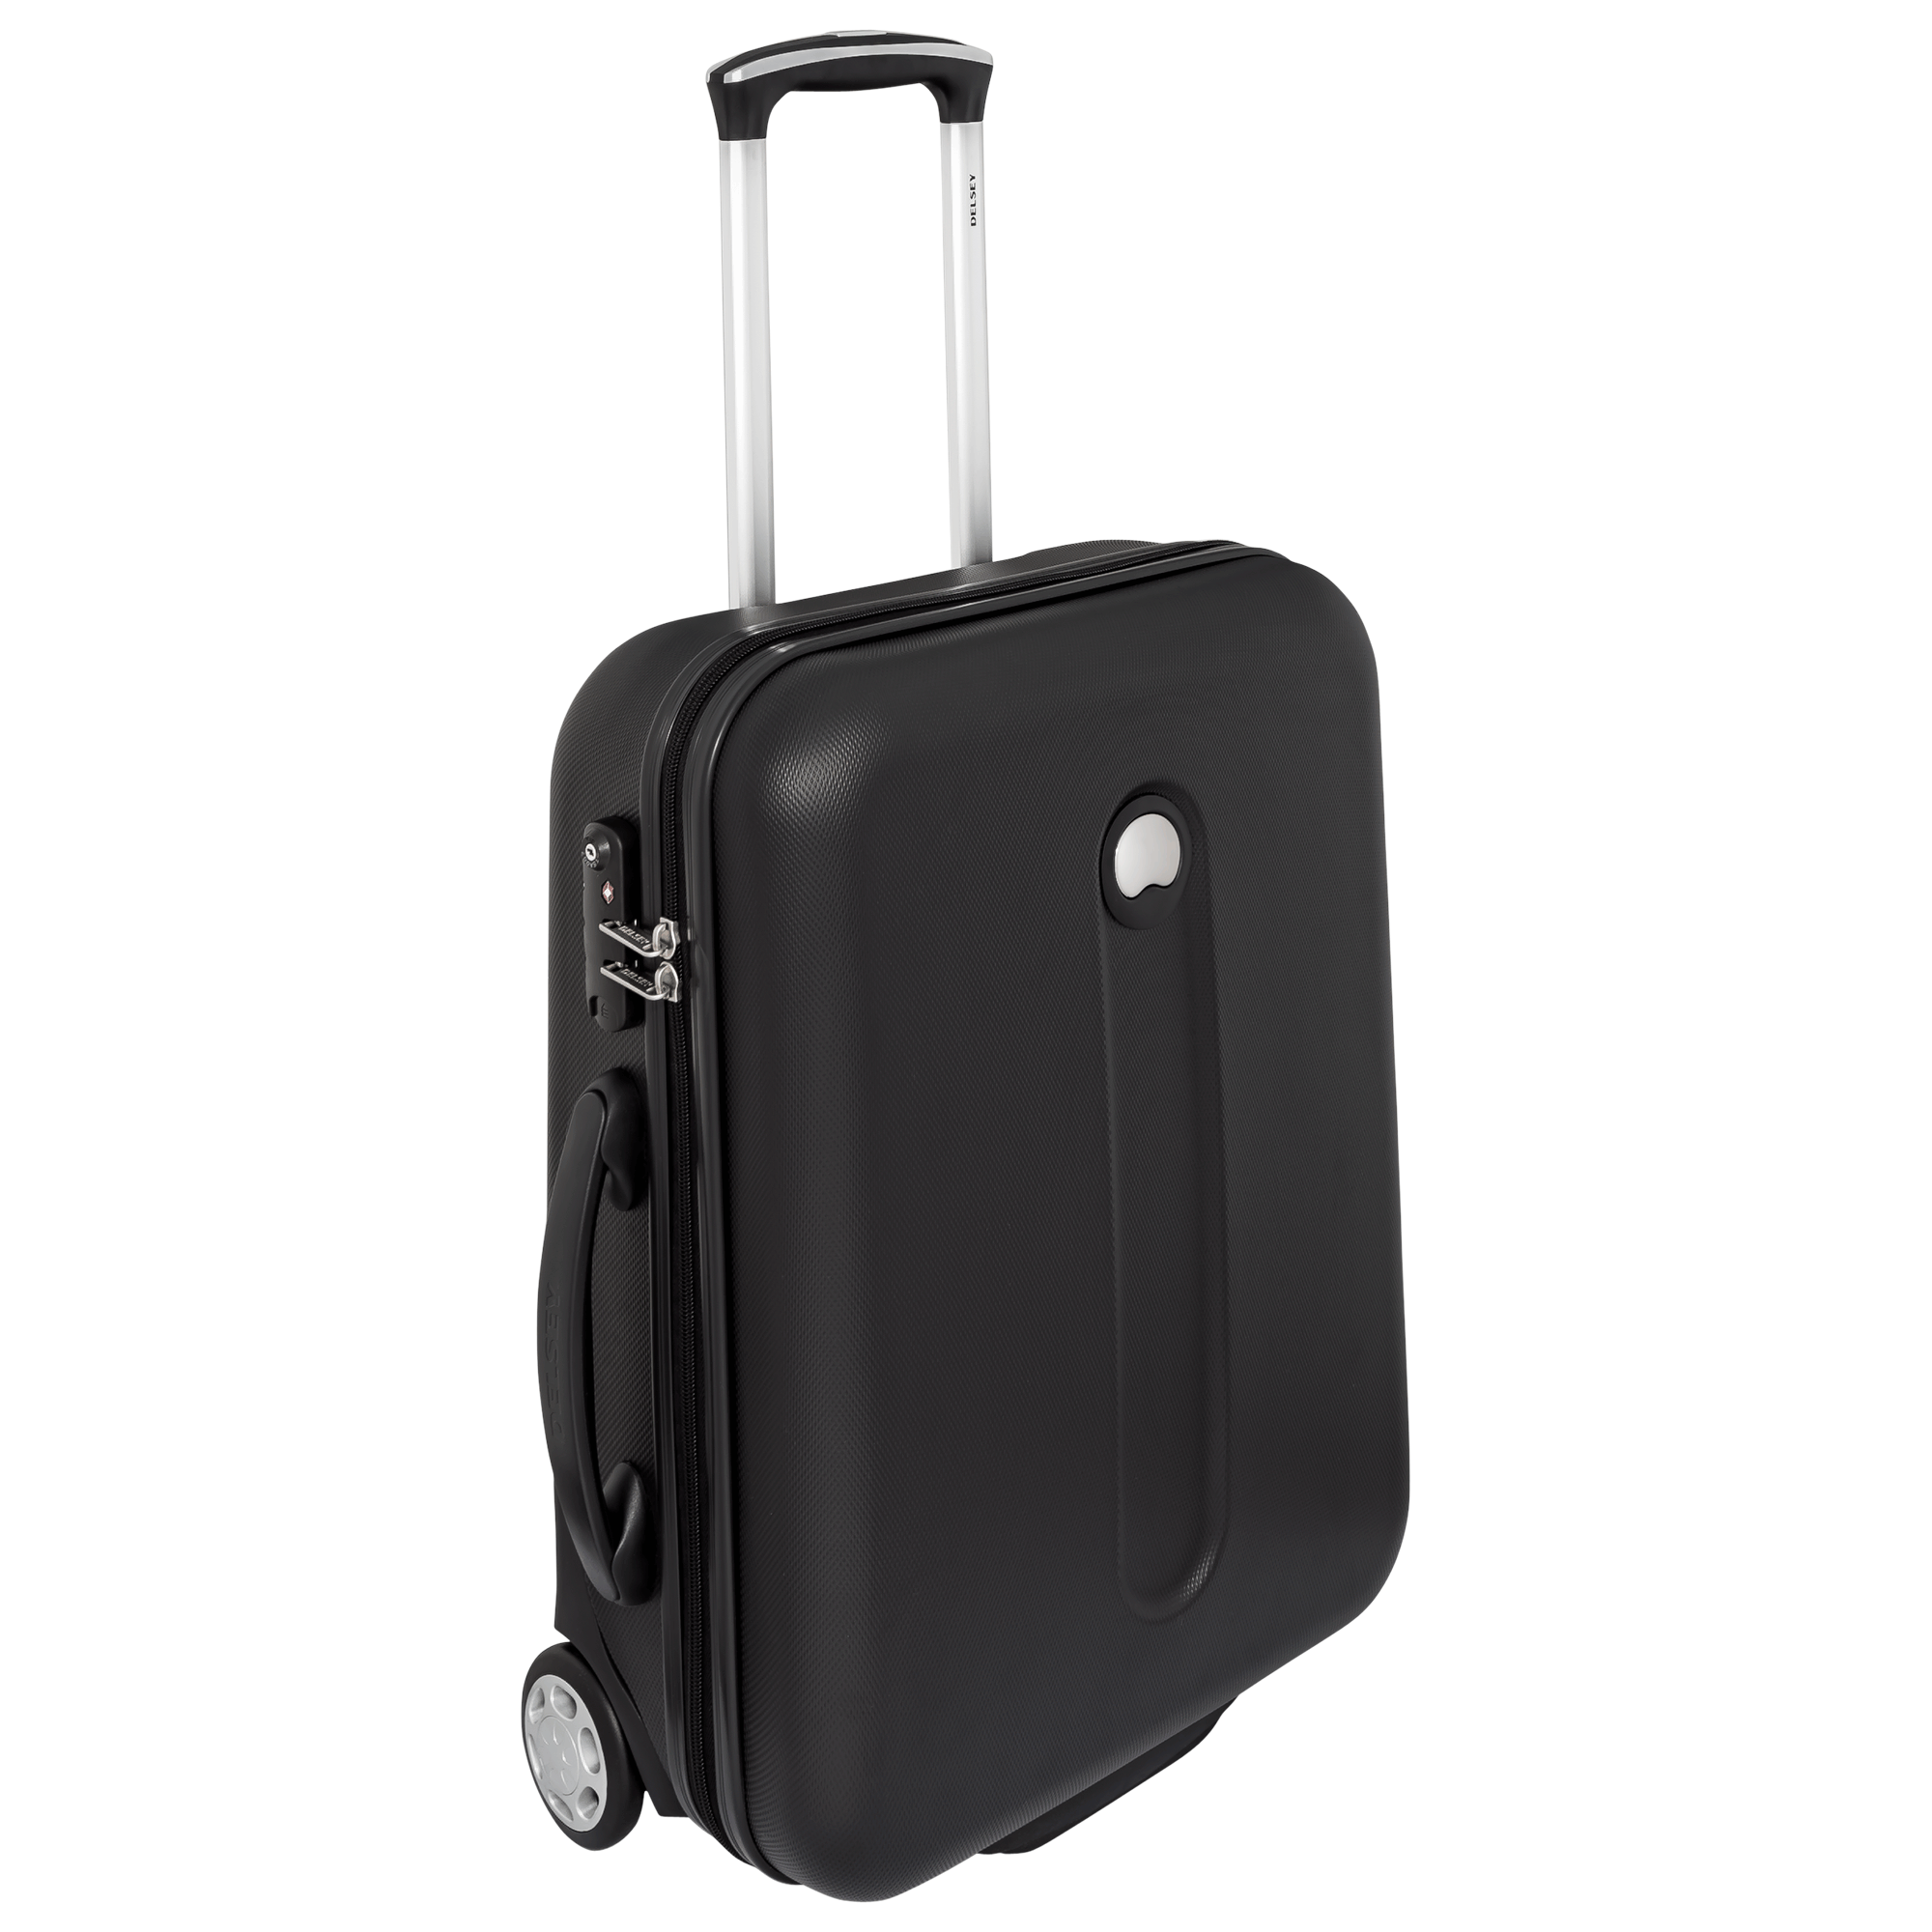 picture free stock Black luggage png image. Suitcase transparent.